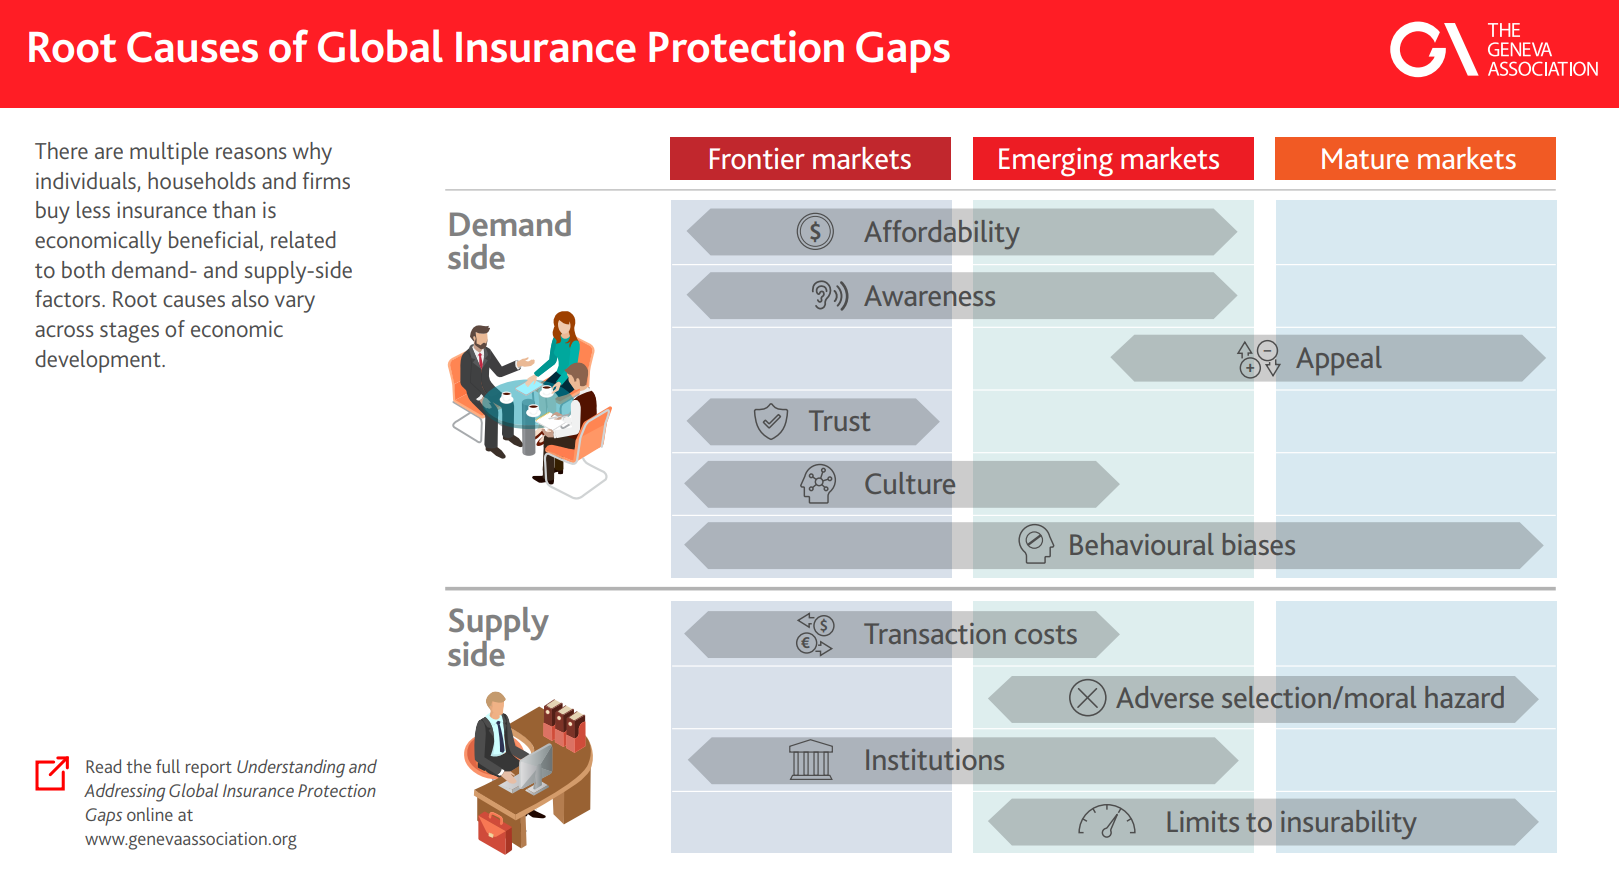 Root Causes of Global Insurance Protection Gaps infographic image